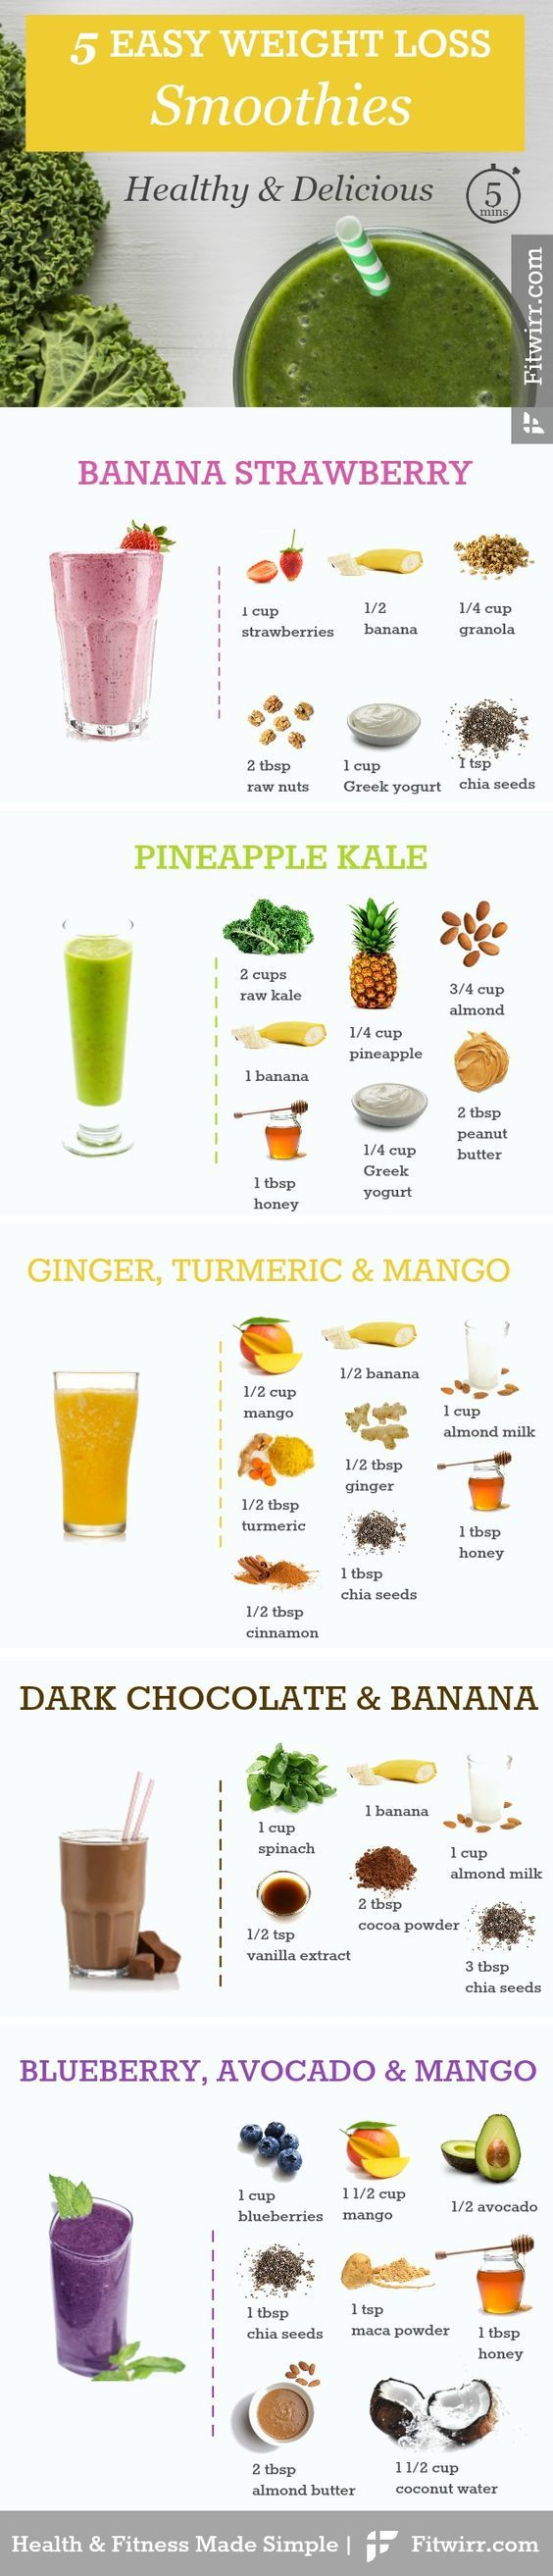 Healthy green smoothies for weight loss. #smoothie #weightloss: